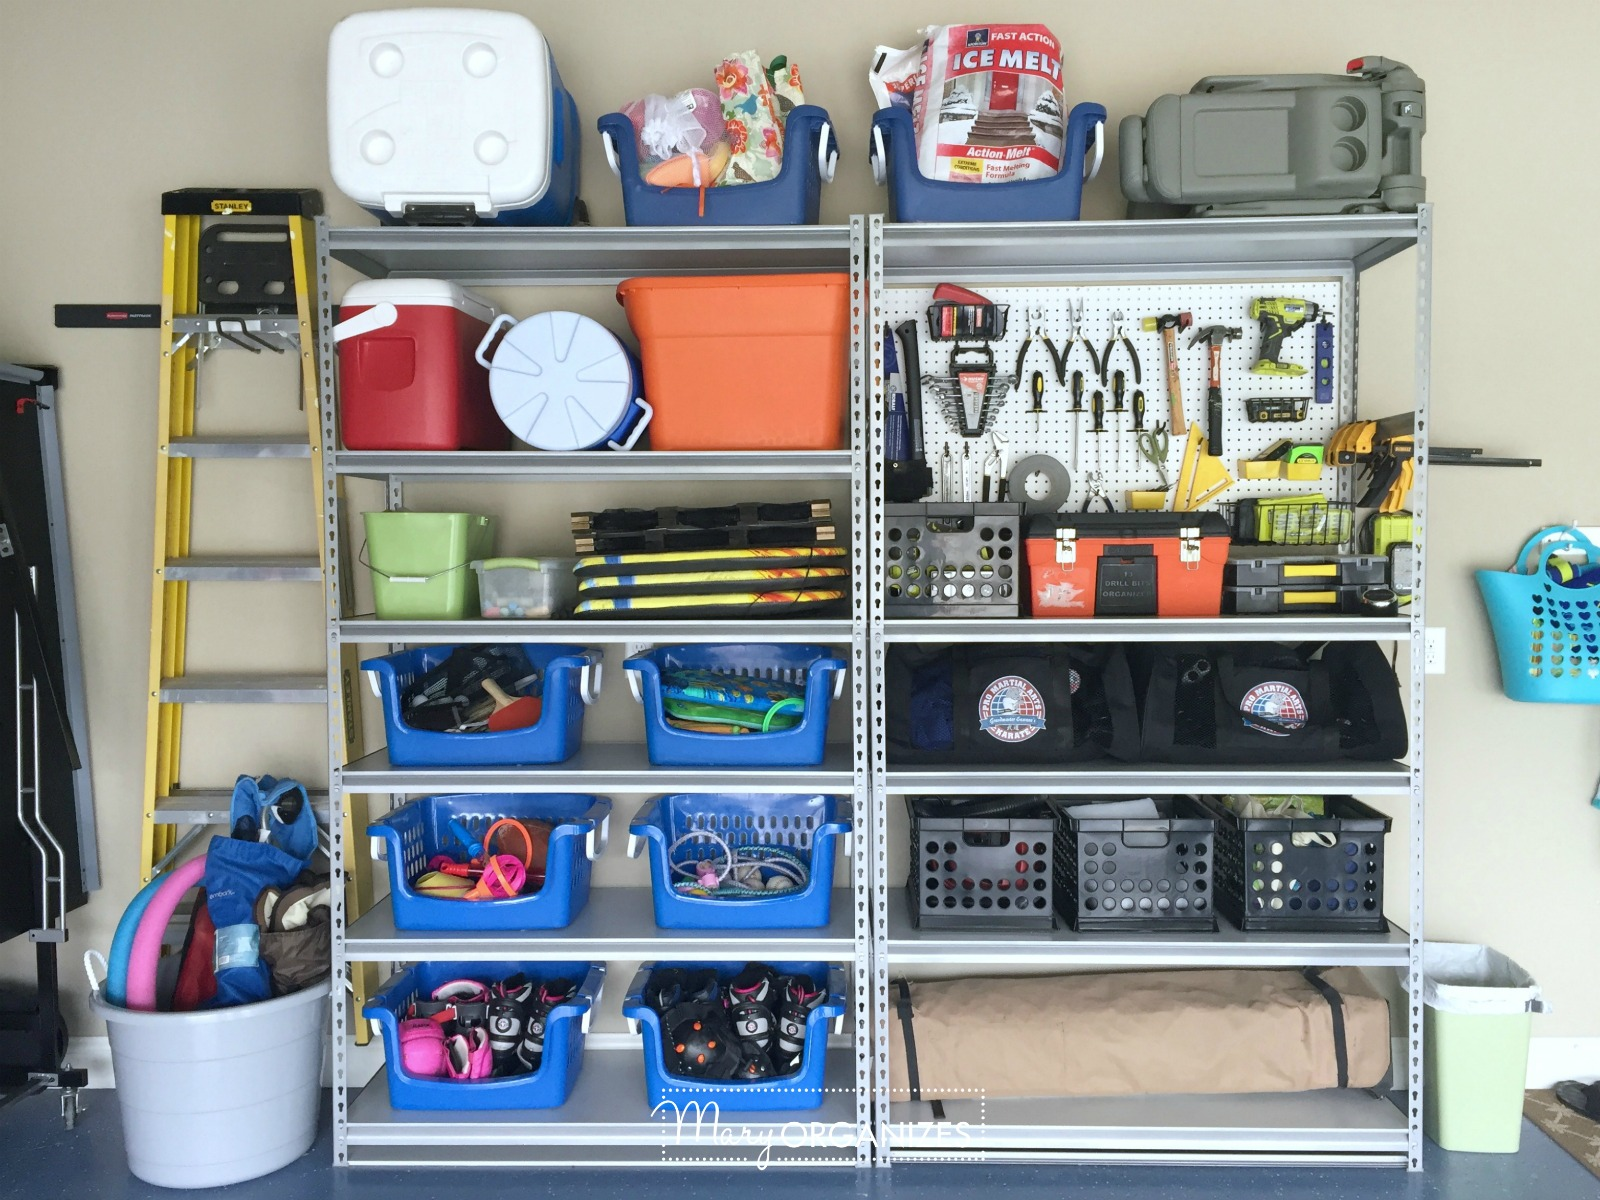 Pegboard Hack and Organizing Garage Shelves 7